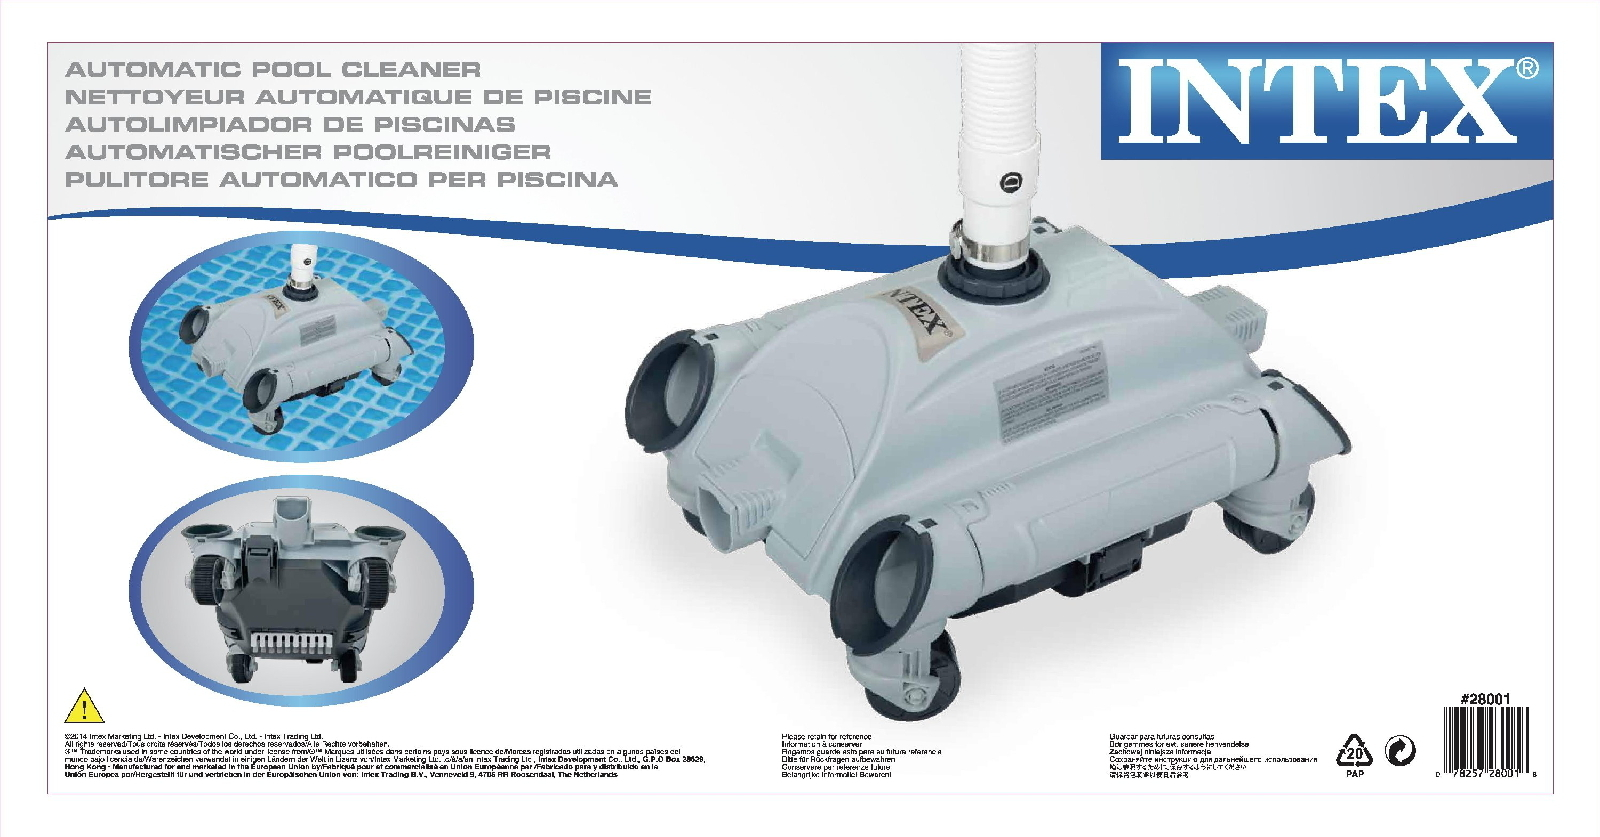 Intex Poolzubehör Bodensauger Bodenreiniger Quotauto Pool Cleaner Quot Nur Für Intex Pool